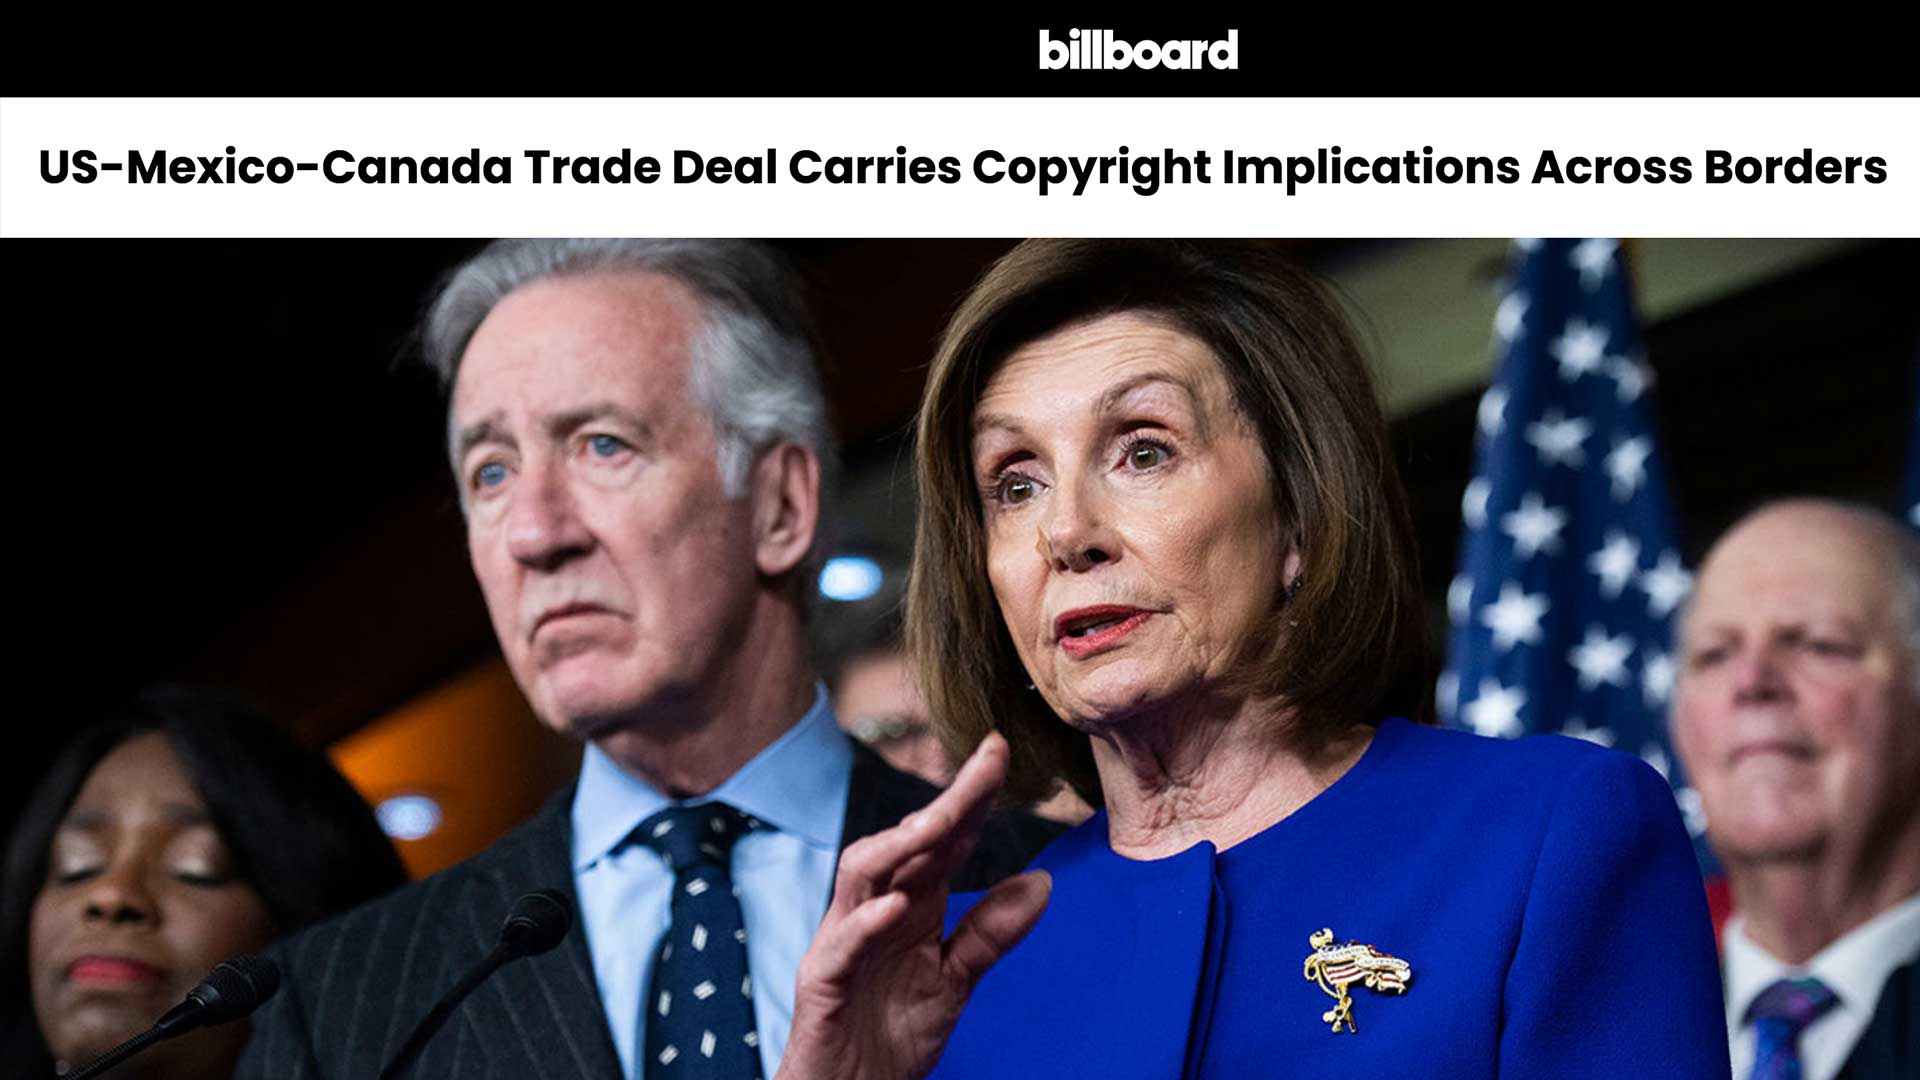 Fairness Rocks News US-Mexico-Canada Trade Deal Carries Copyright Implications Across Borders